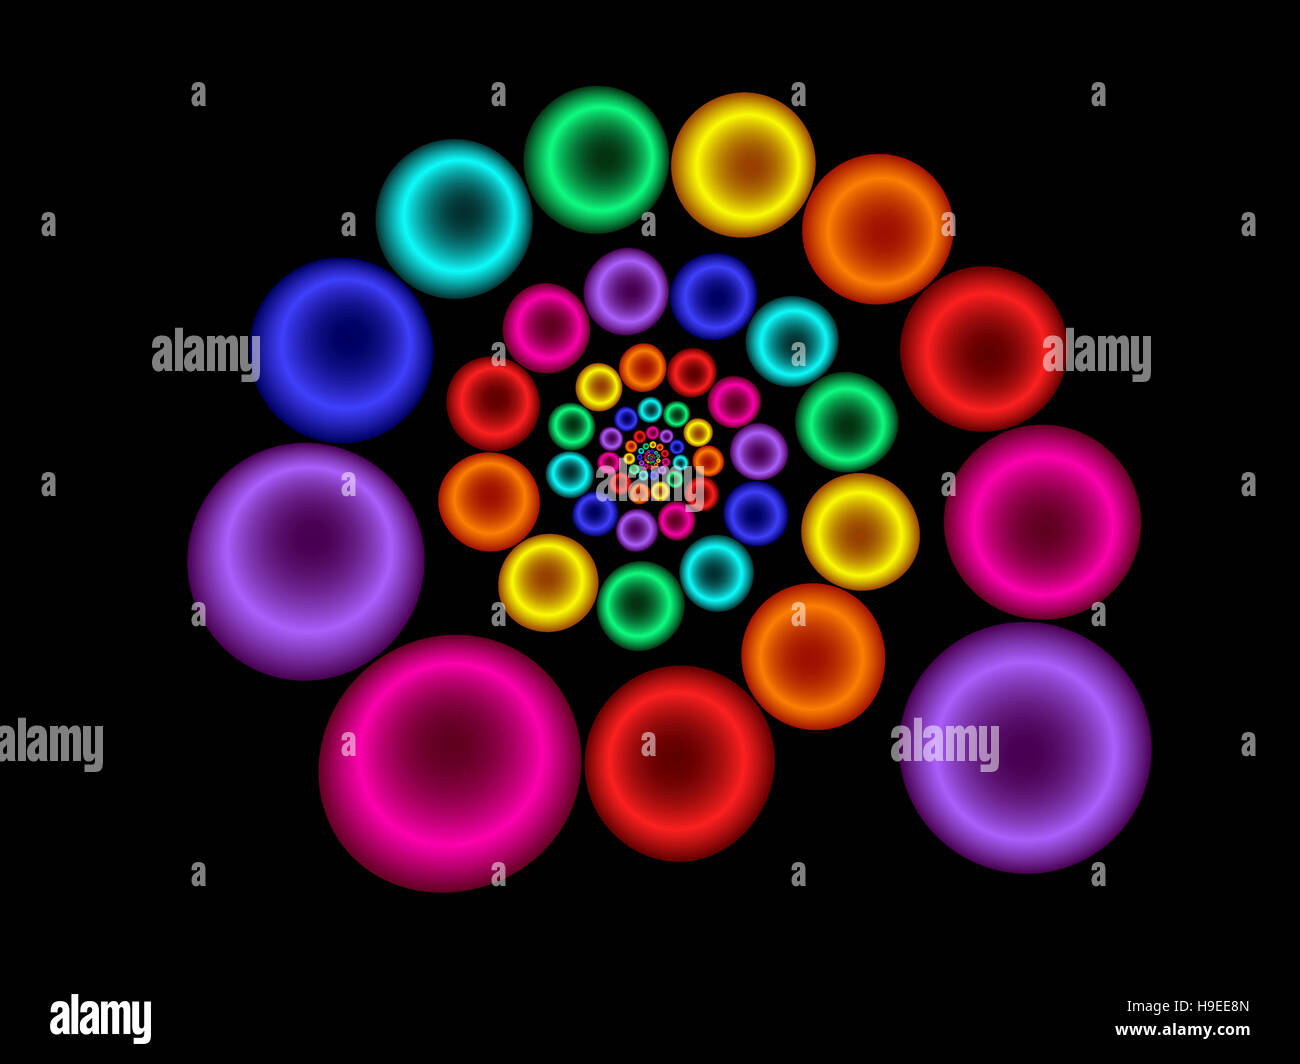 Spiraling Circle Illustration Stock Photo